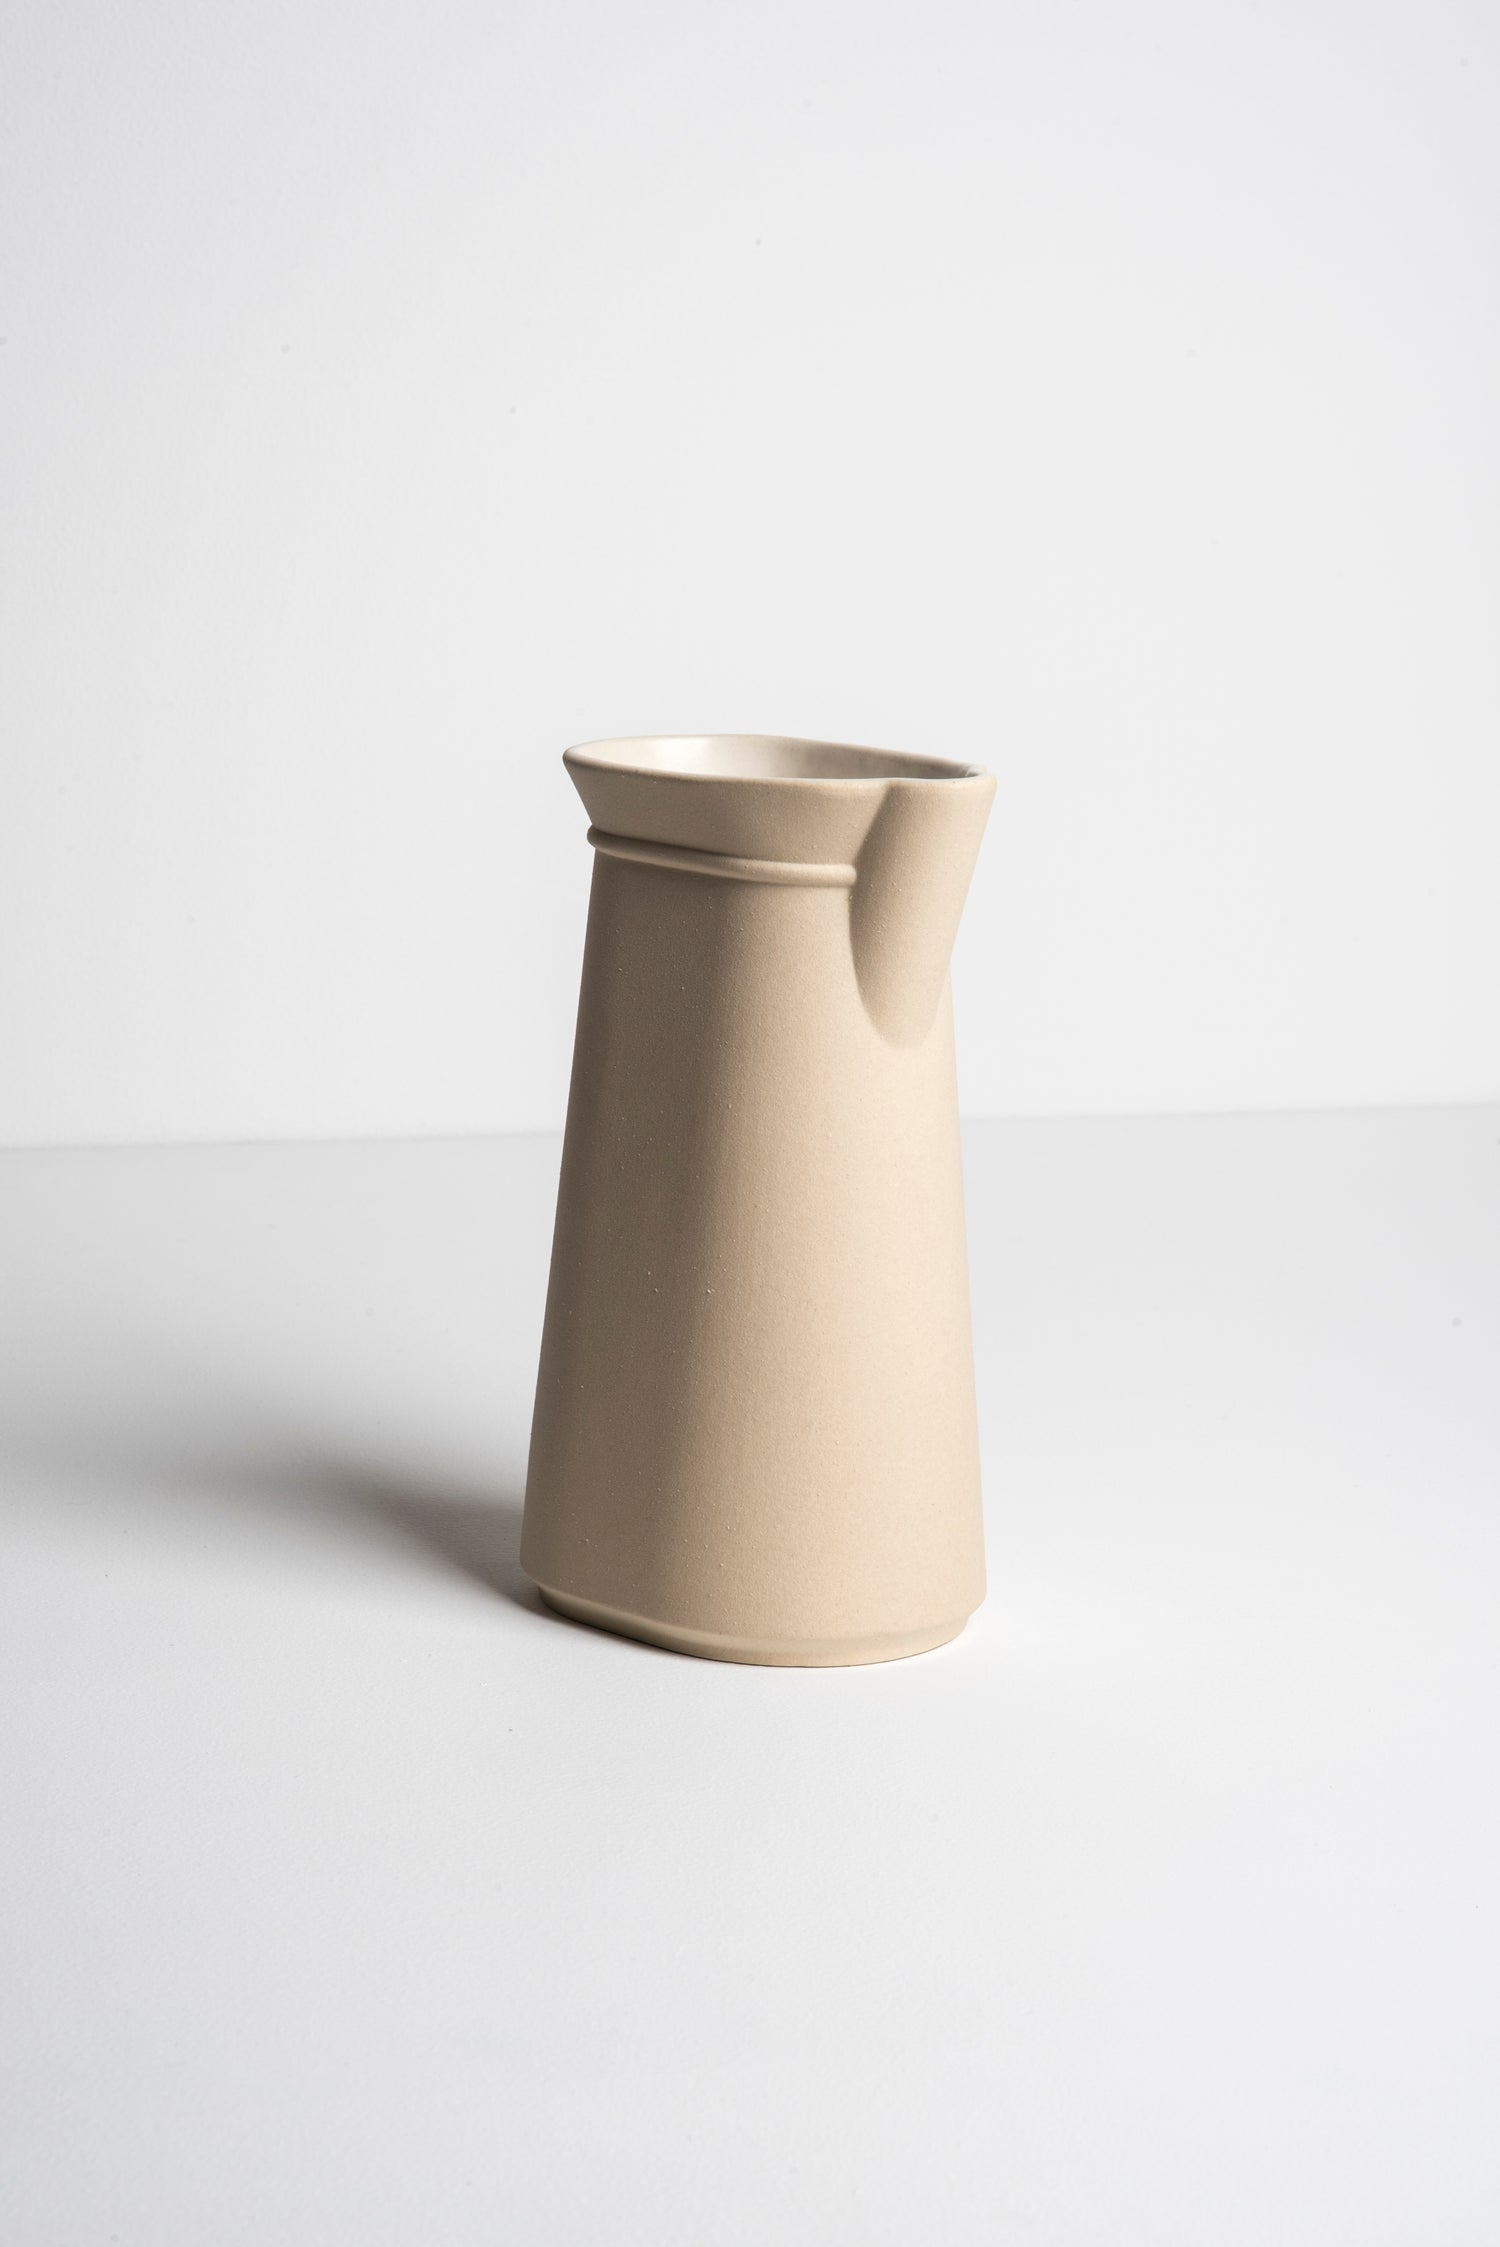 Image of Raw Pitcher